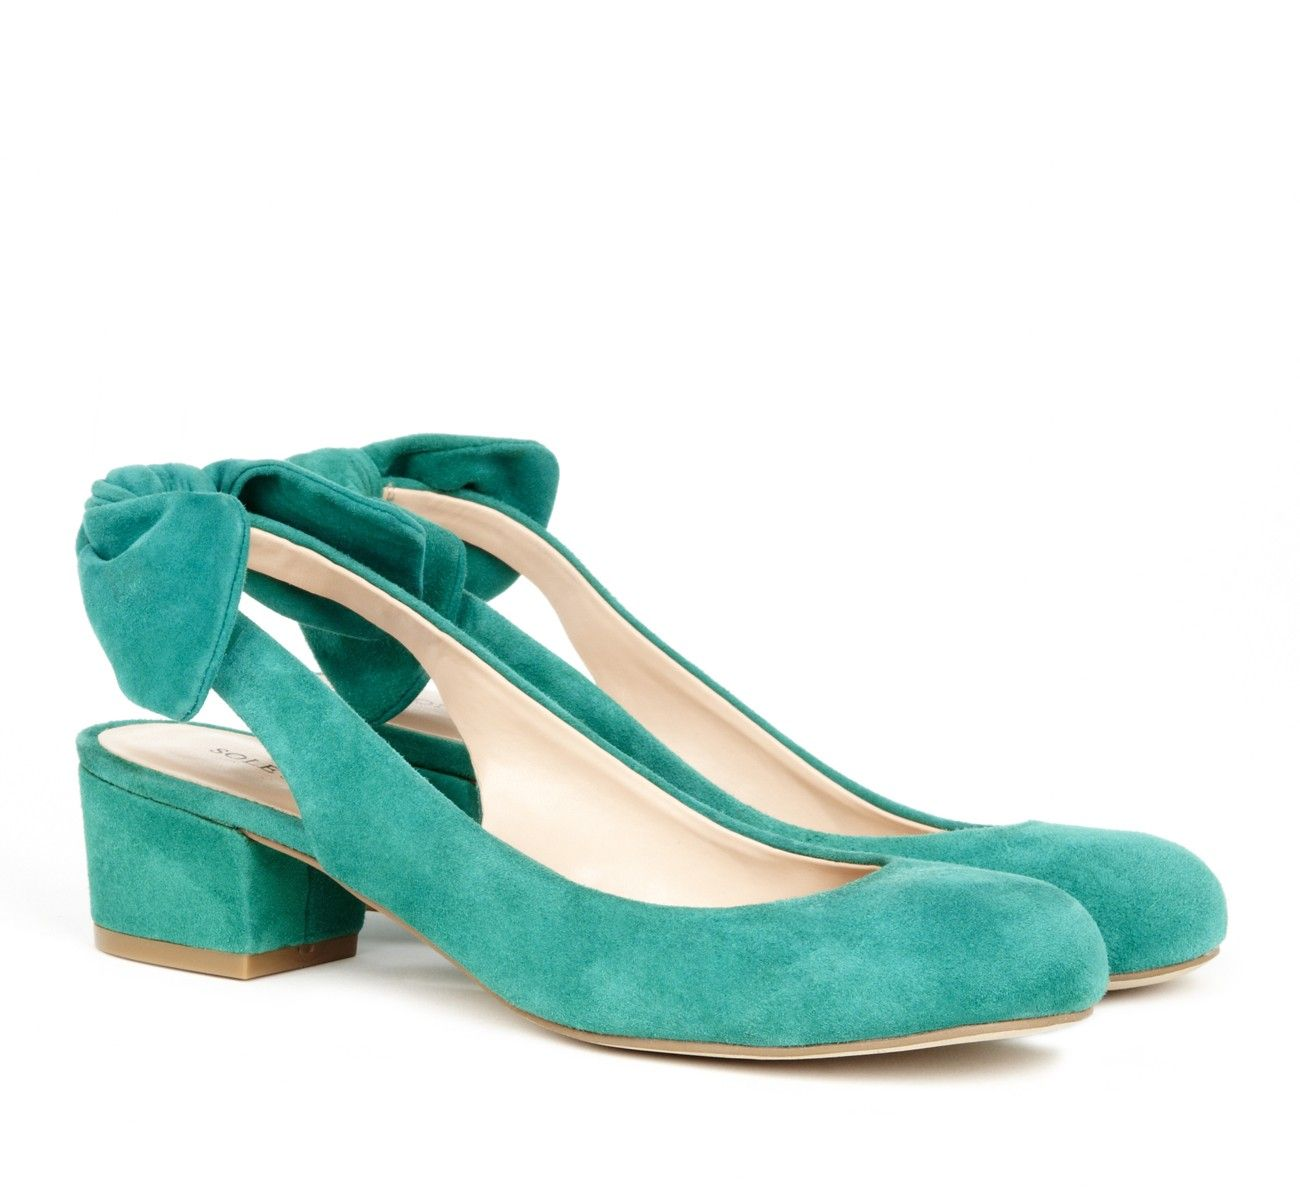 Bow Slingback Shoes in Green Suede.